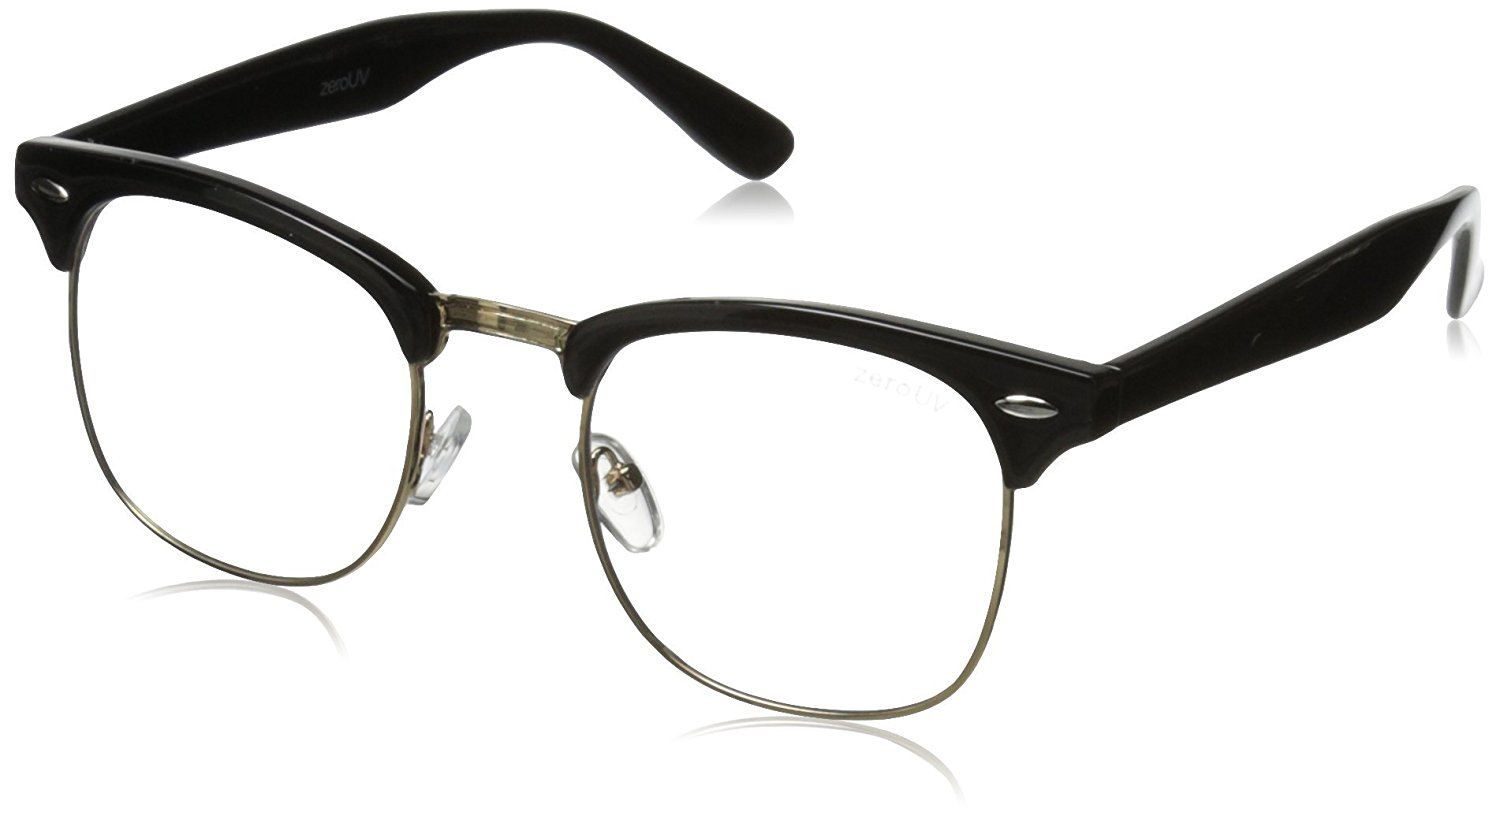 ad4a38f8775d Get Quotations · zeroUV - Vintage Inspired Classic Horn Rimmed Nerd Horn  Rimmed UV400 Clear Lens Glasses